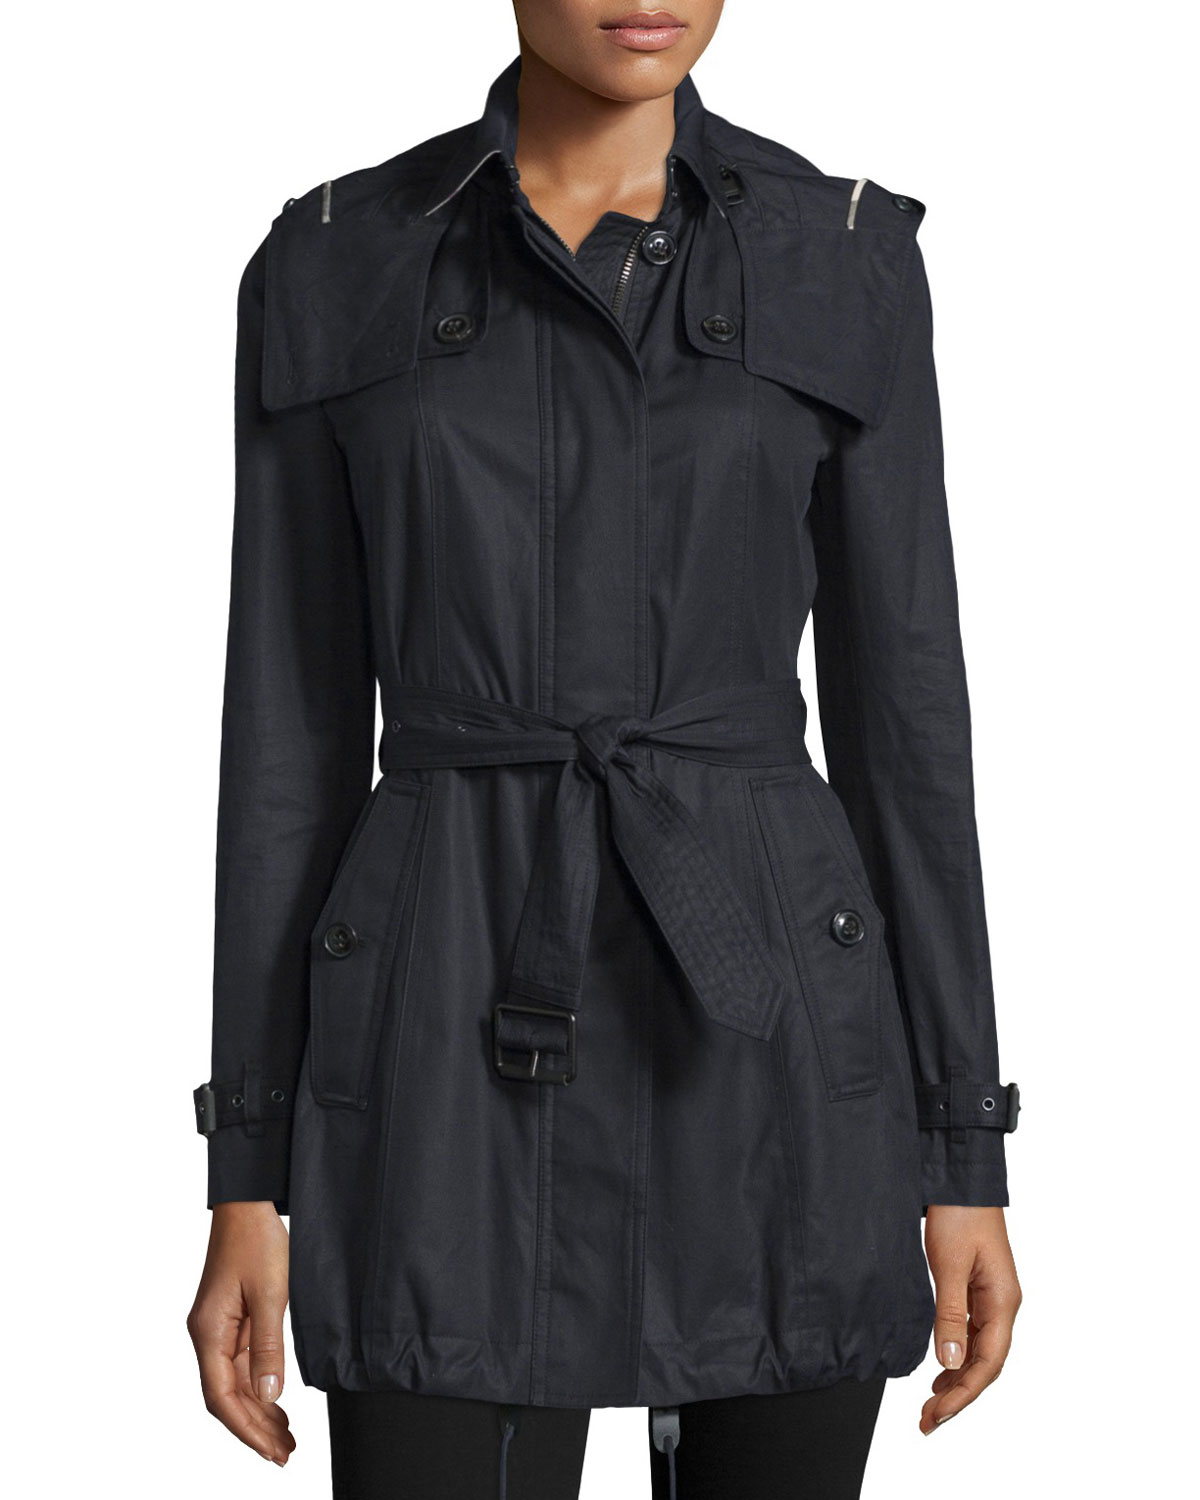 Fenstone Single-Breasted Raincoat, Black